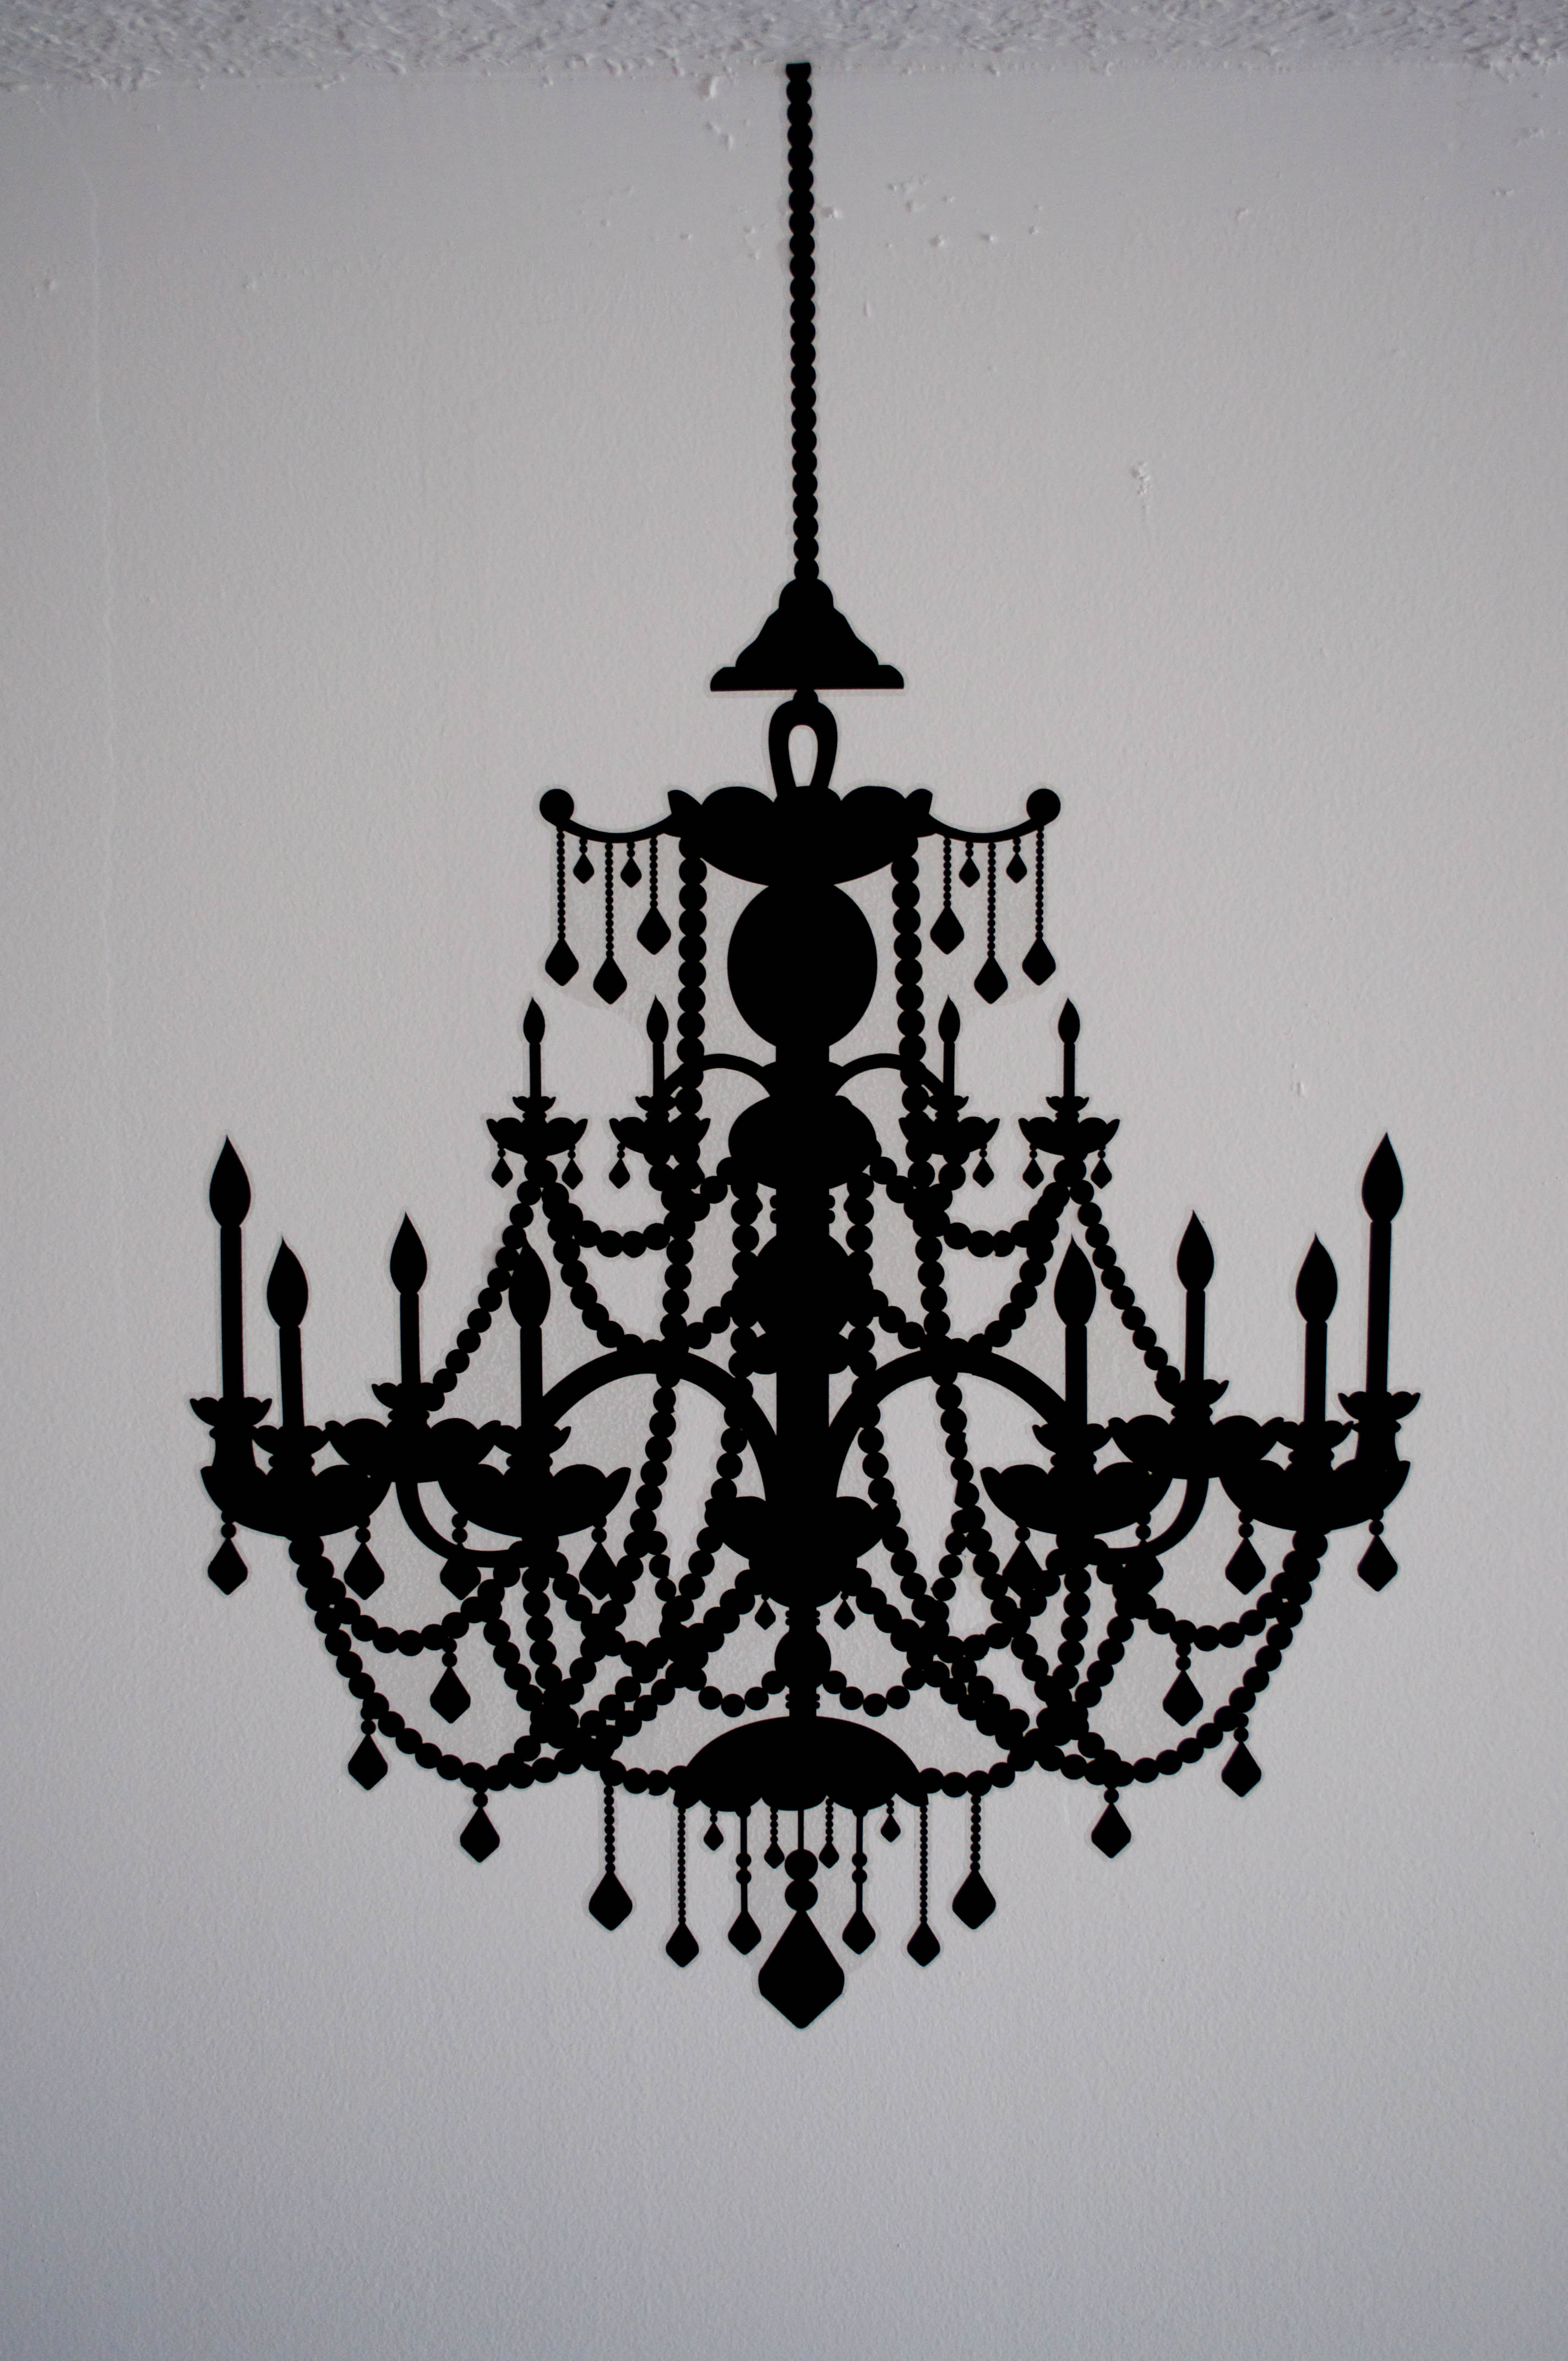 Chandelier wall decal target wall decals target with roommates unpeel and carefully stick each of the four decal pieces to the wall mozeypictures Images